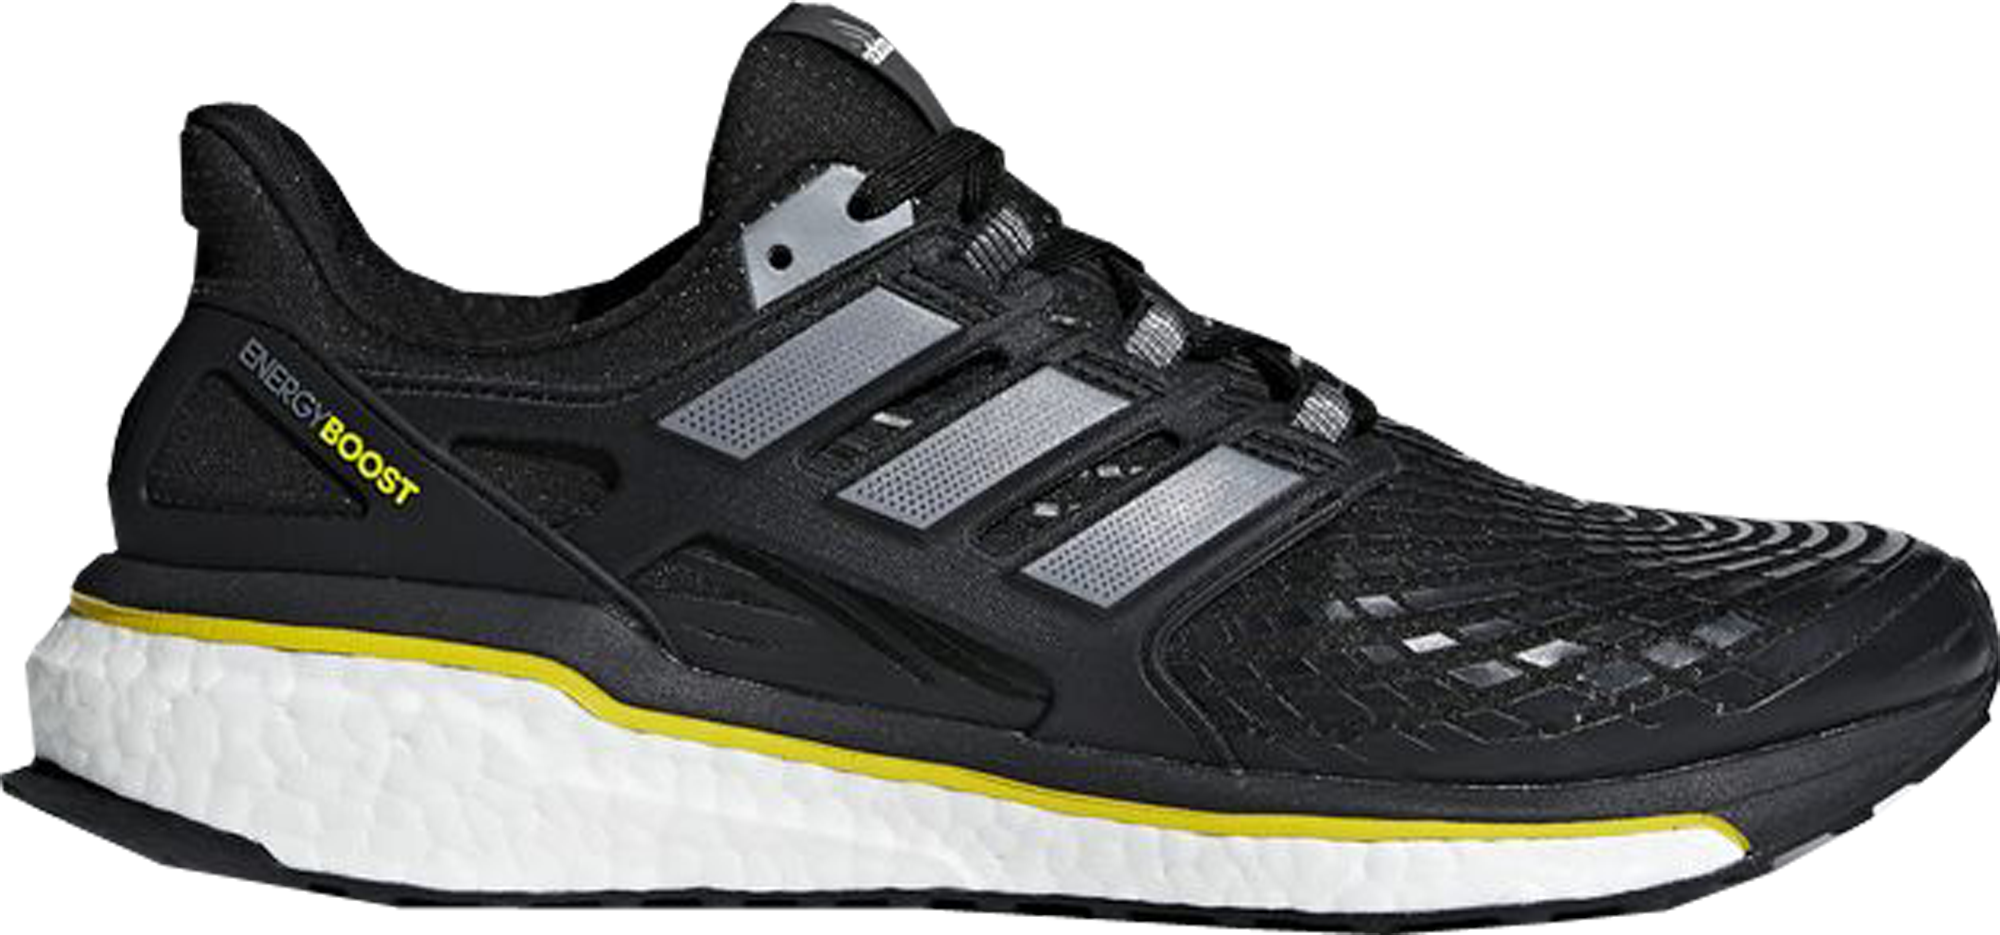 adidas Energy Boost 5th Anniversary Black Yellow